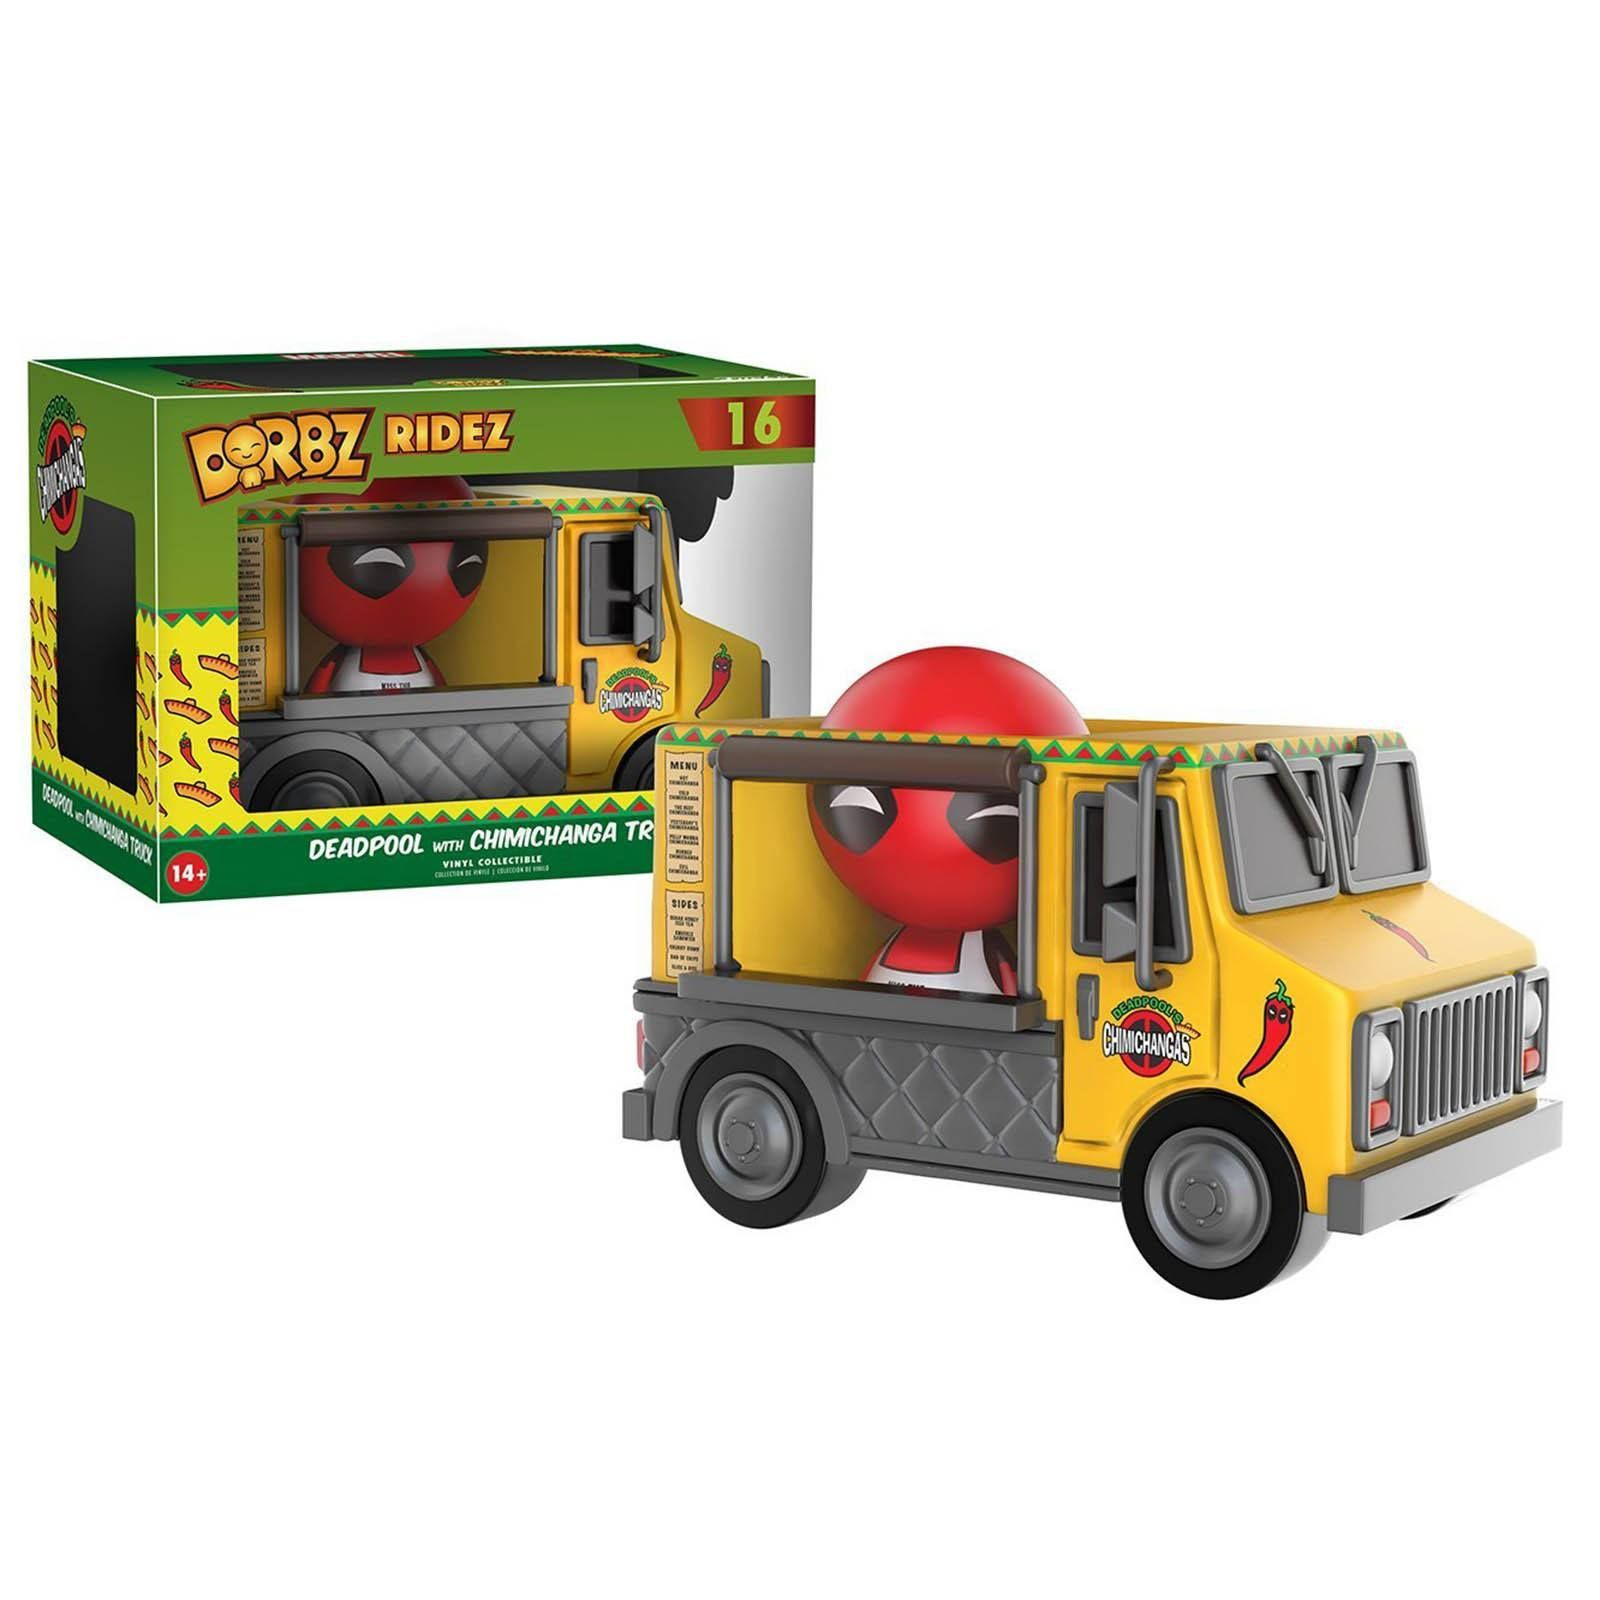 Funko Marvel Dorbz Deadpool With Chimichanga Truck Vinyl Figure - Radar Toys